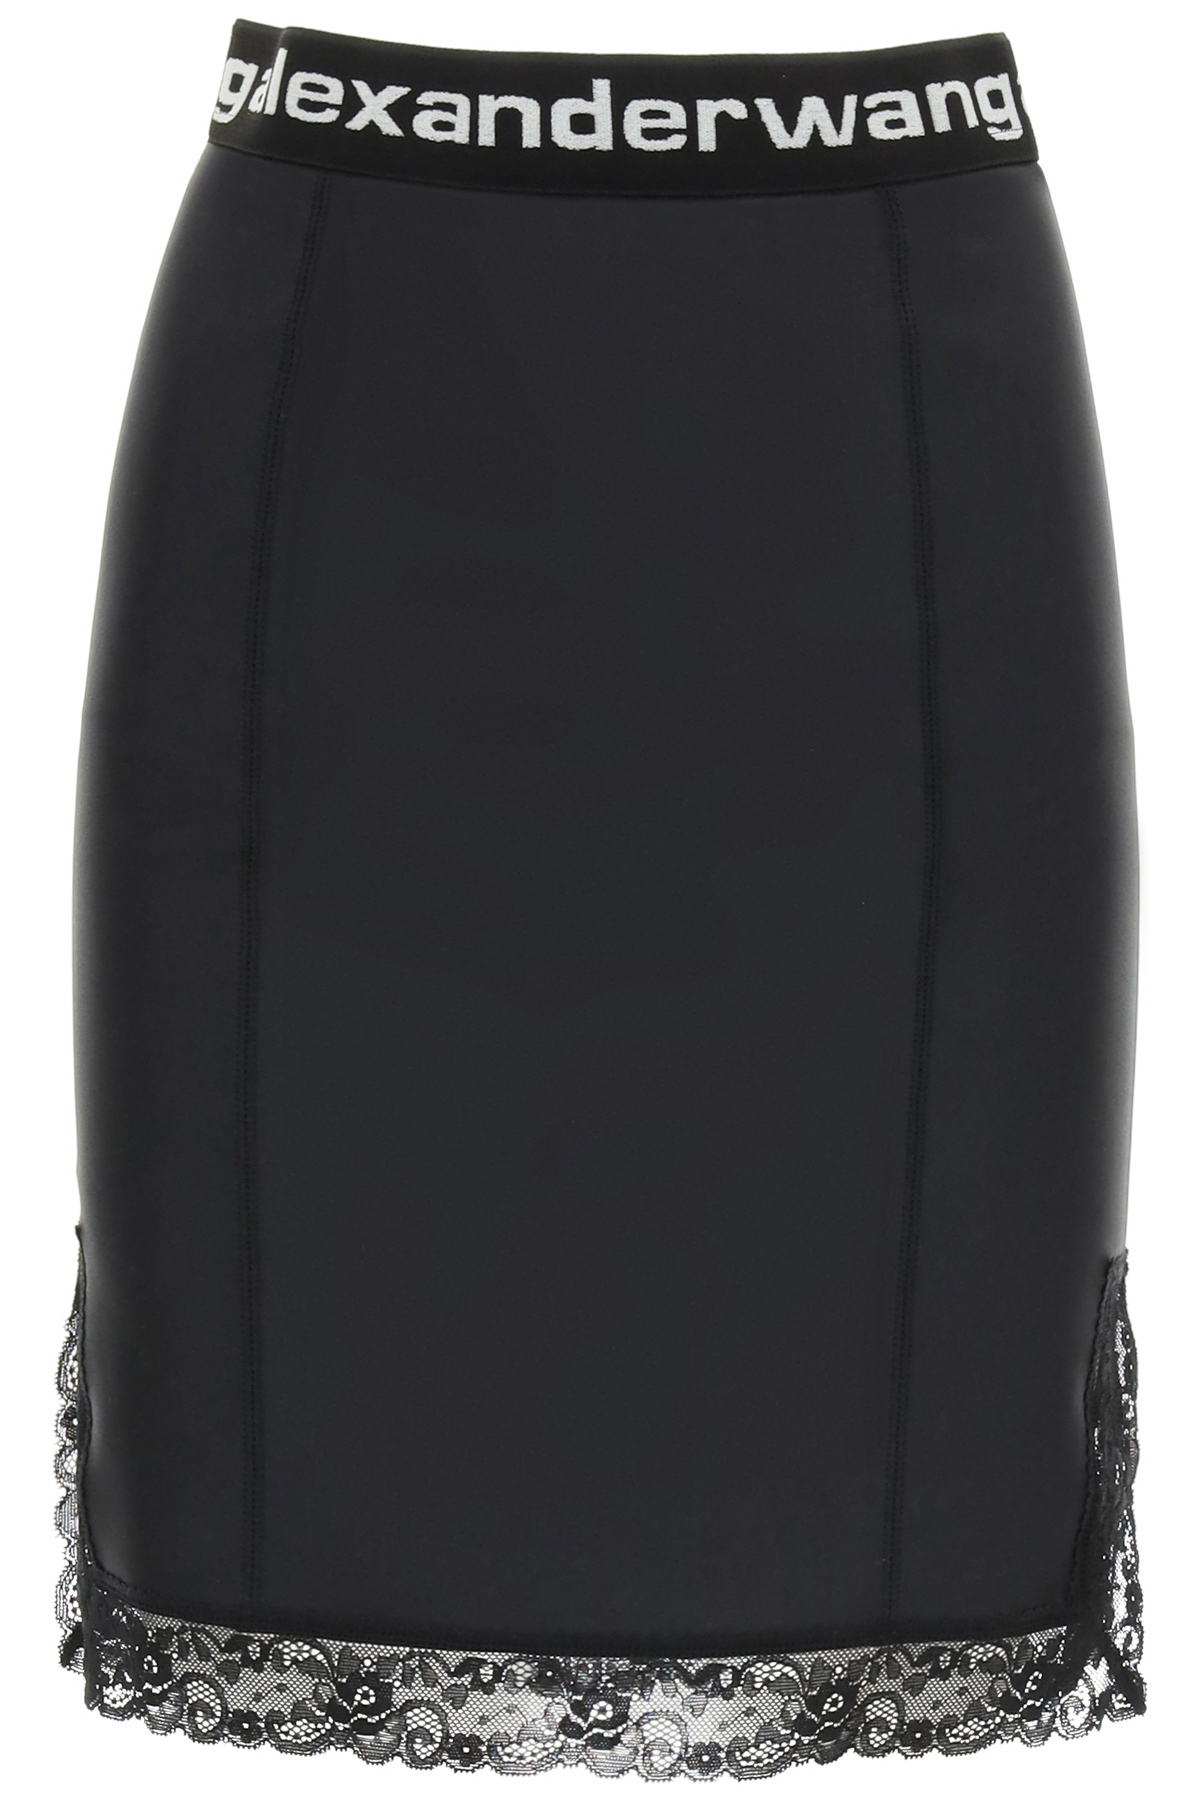 Alexander Wang MINI SKIRT WITH LACE